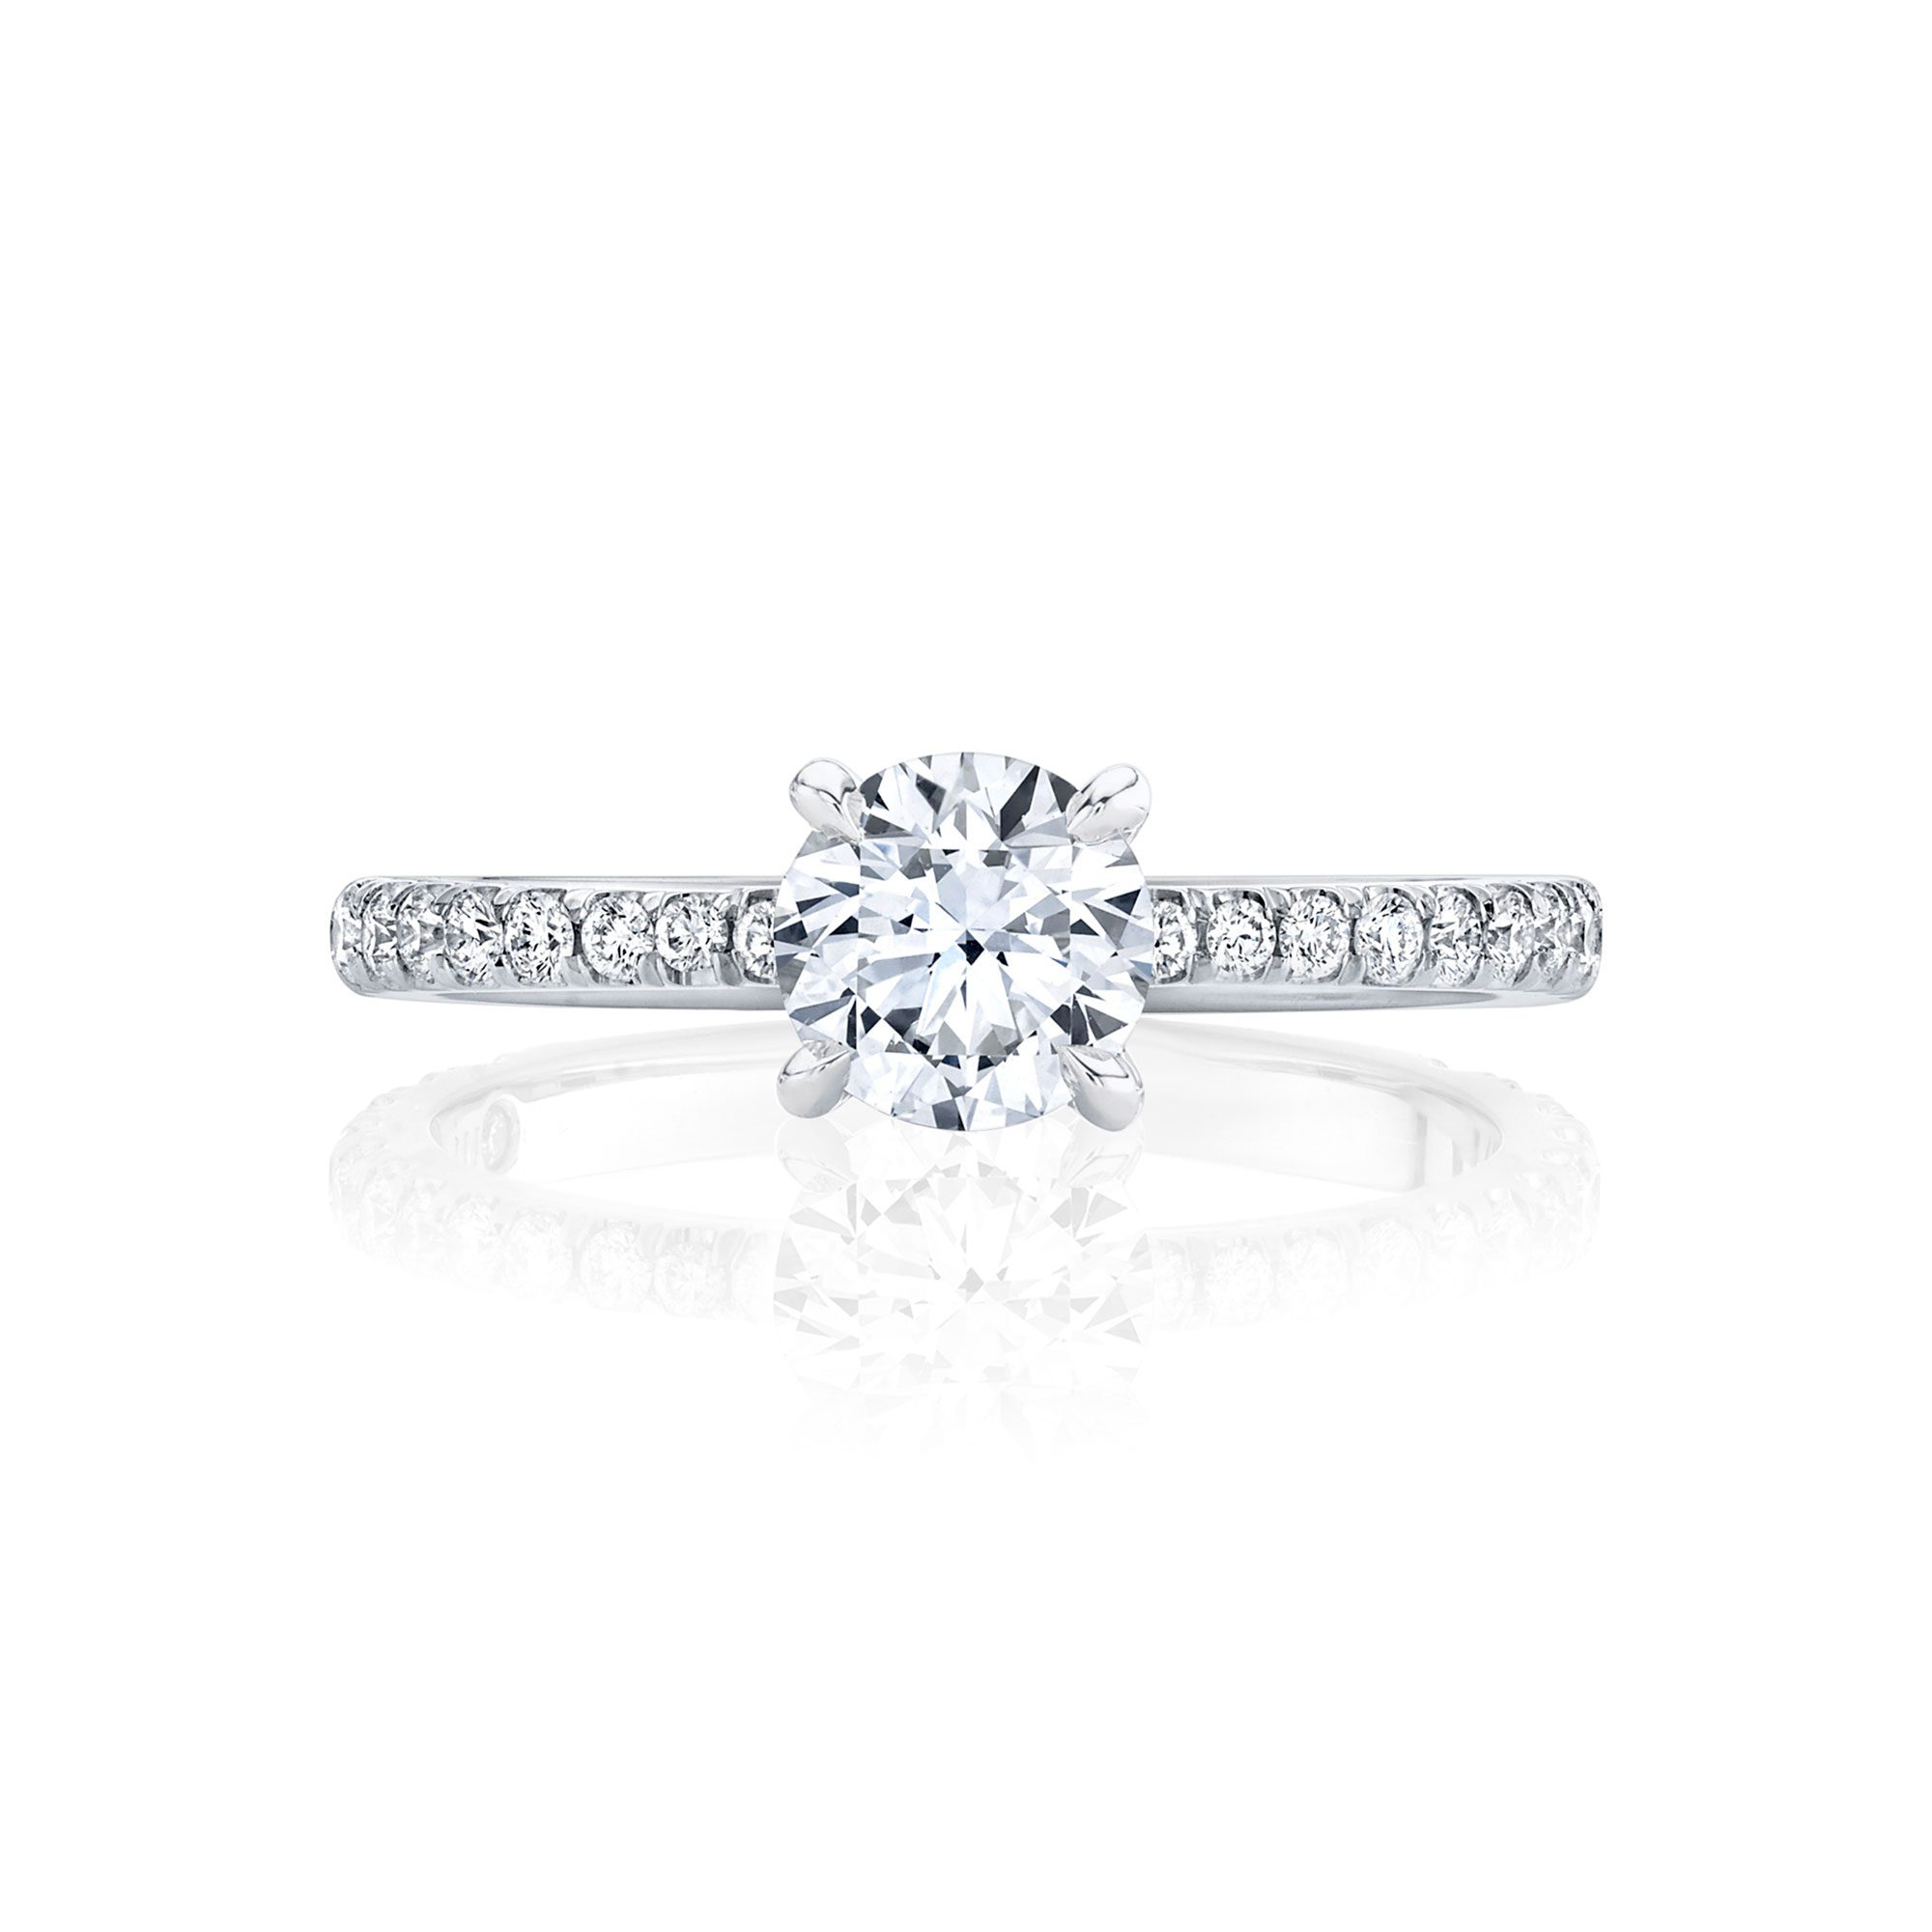 Eloise Round Brilliant Solitaire Engagement Ring with a diamond pavé band in 18k White Gold Front View by Oui by Jean Dousset